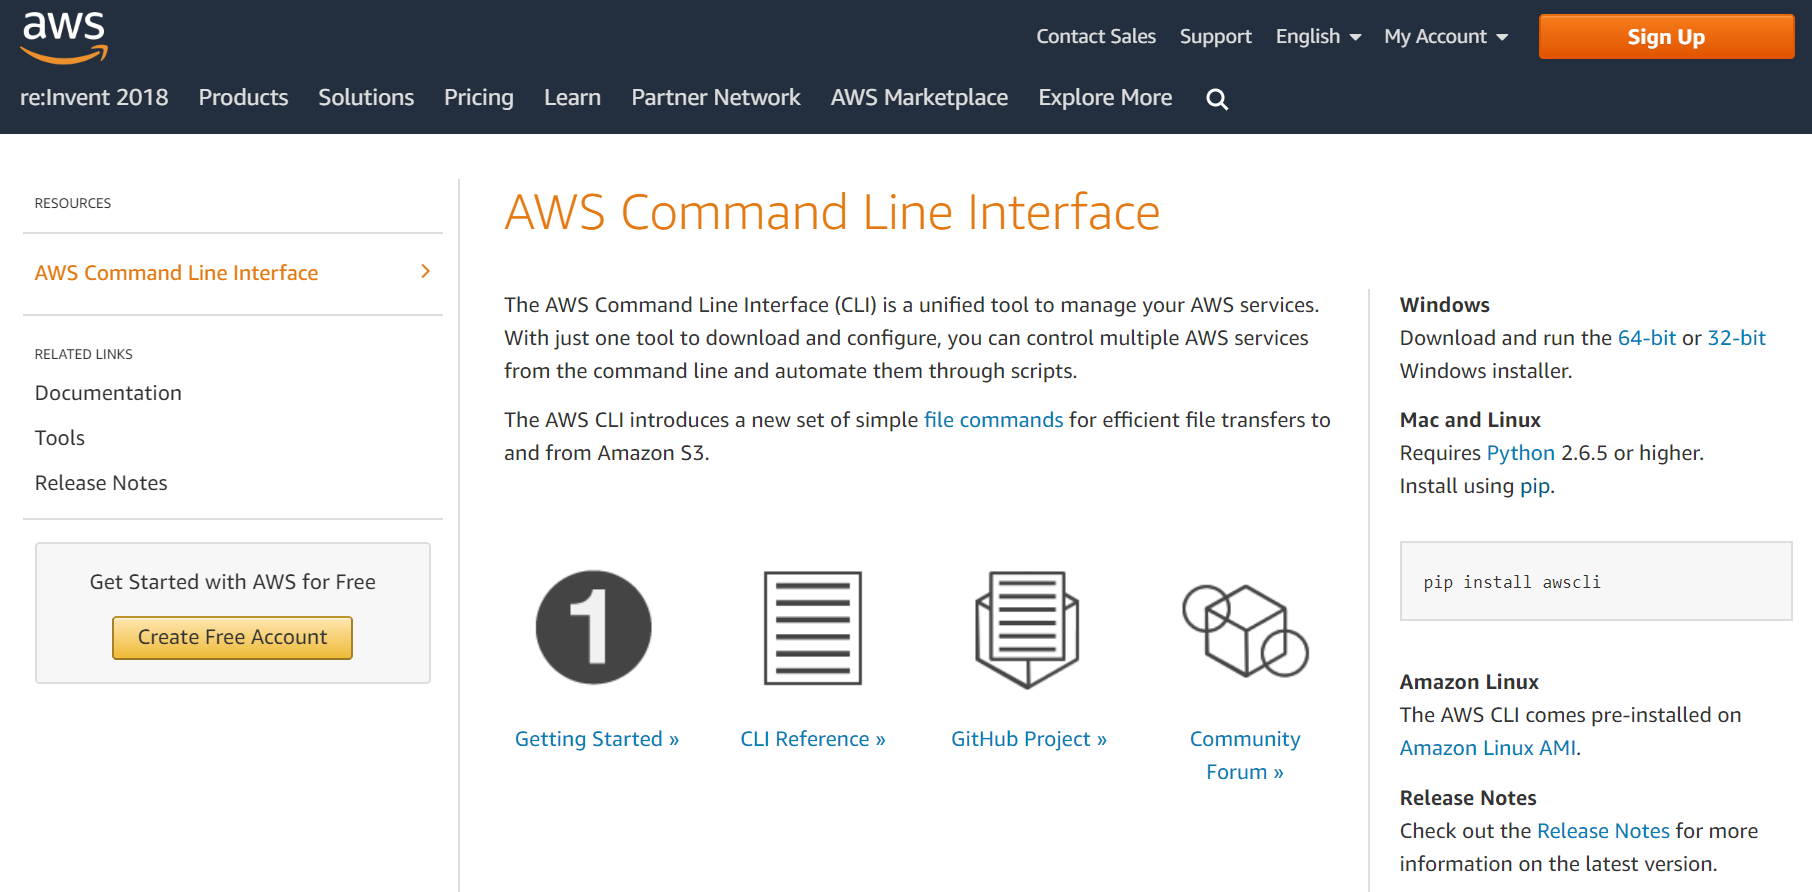 Accessing AWS services using command line interface on Windows